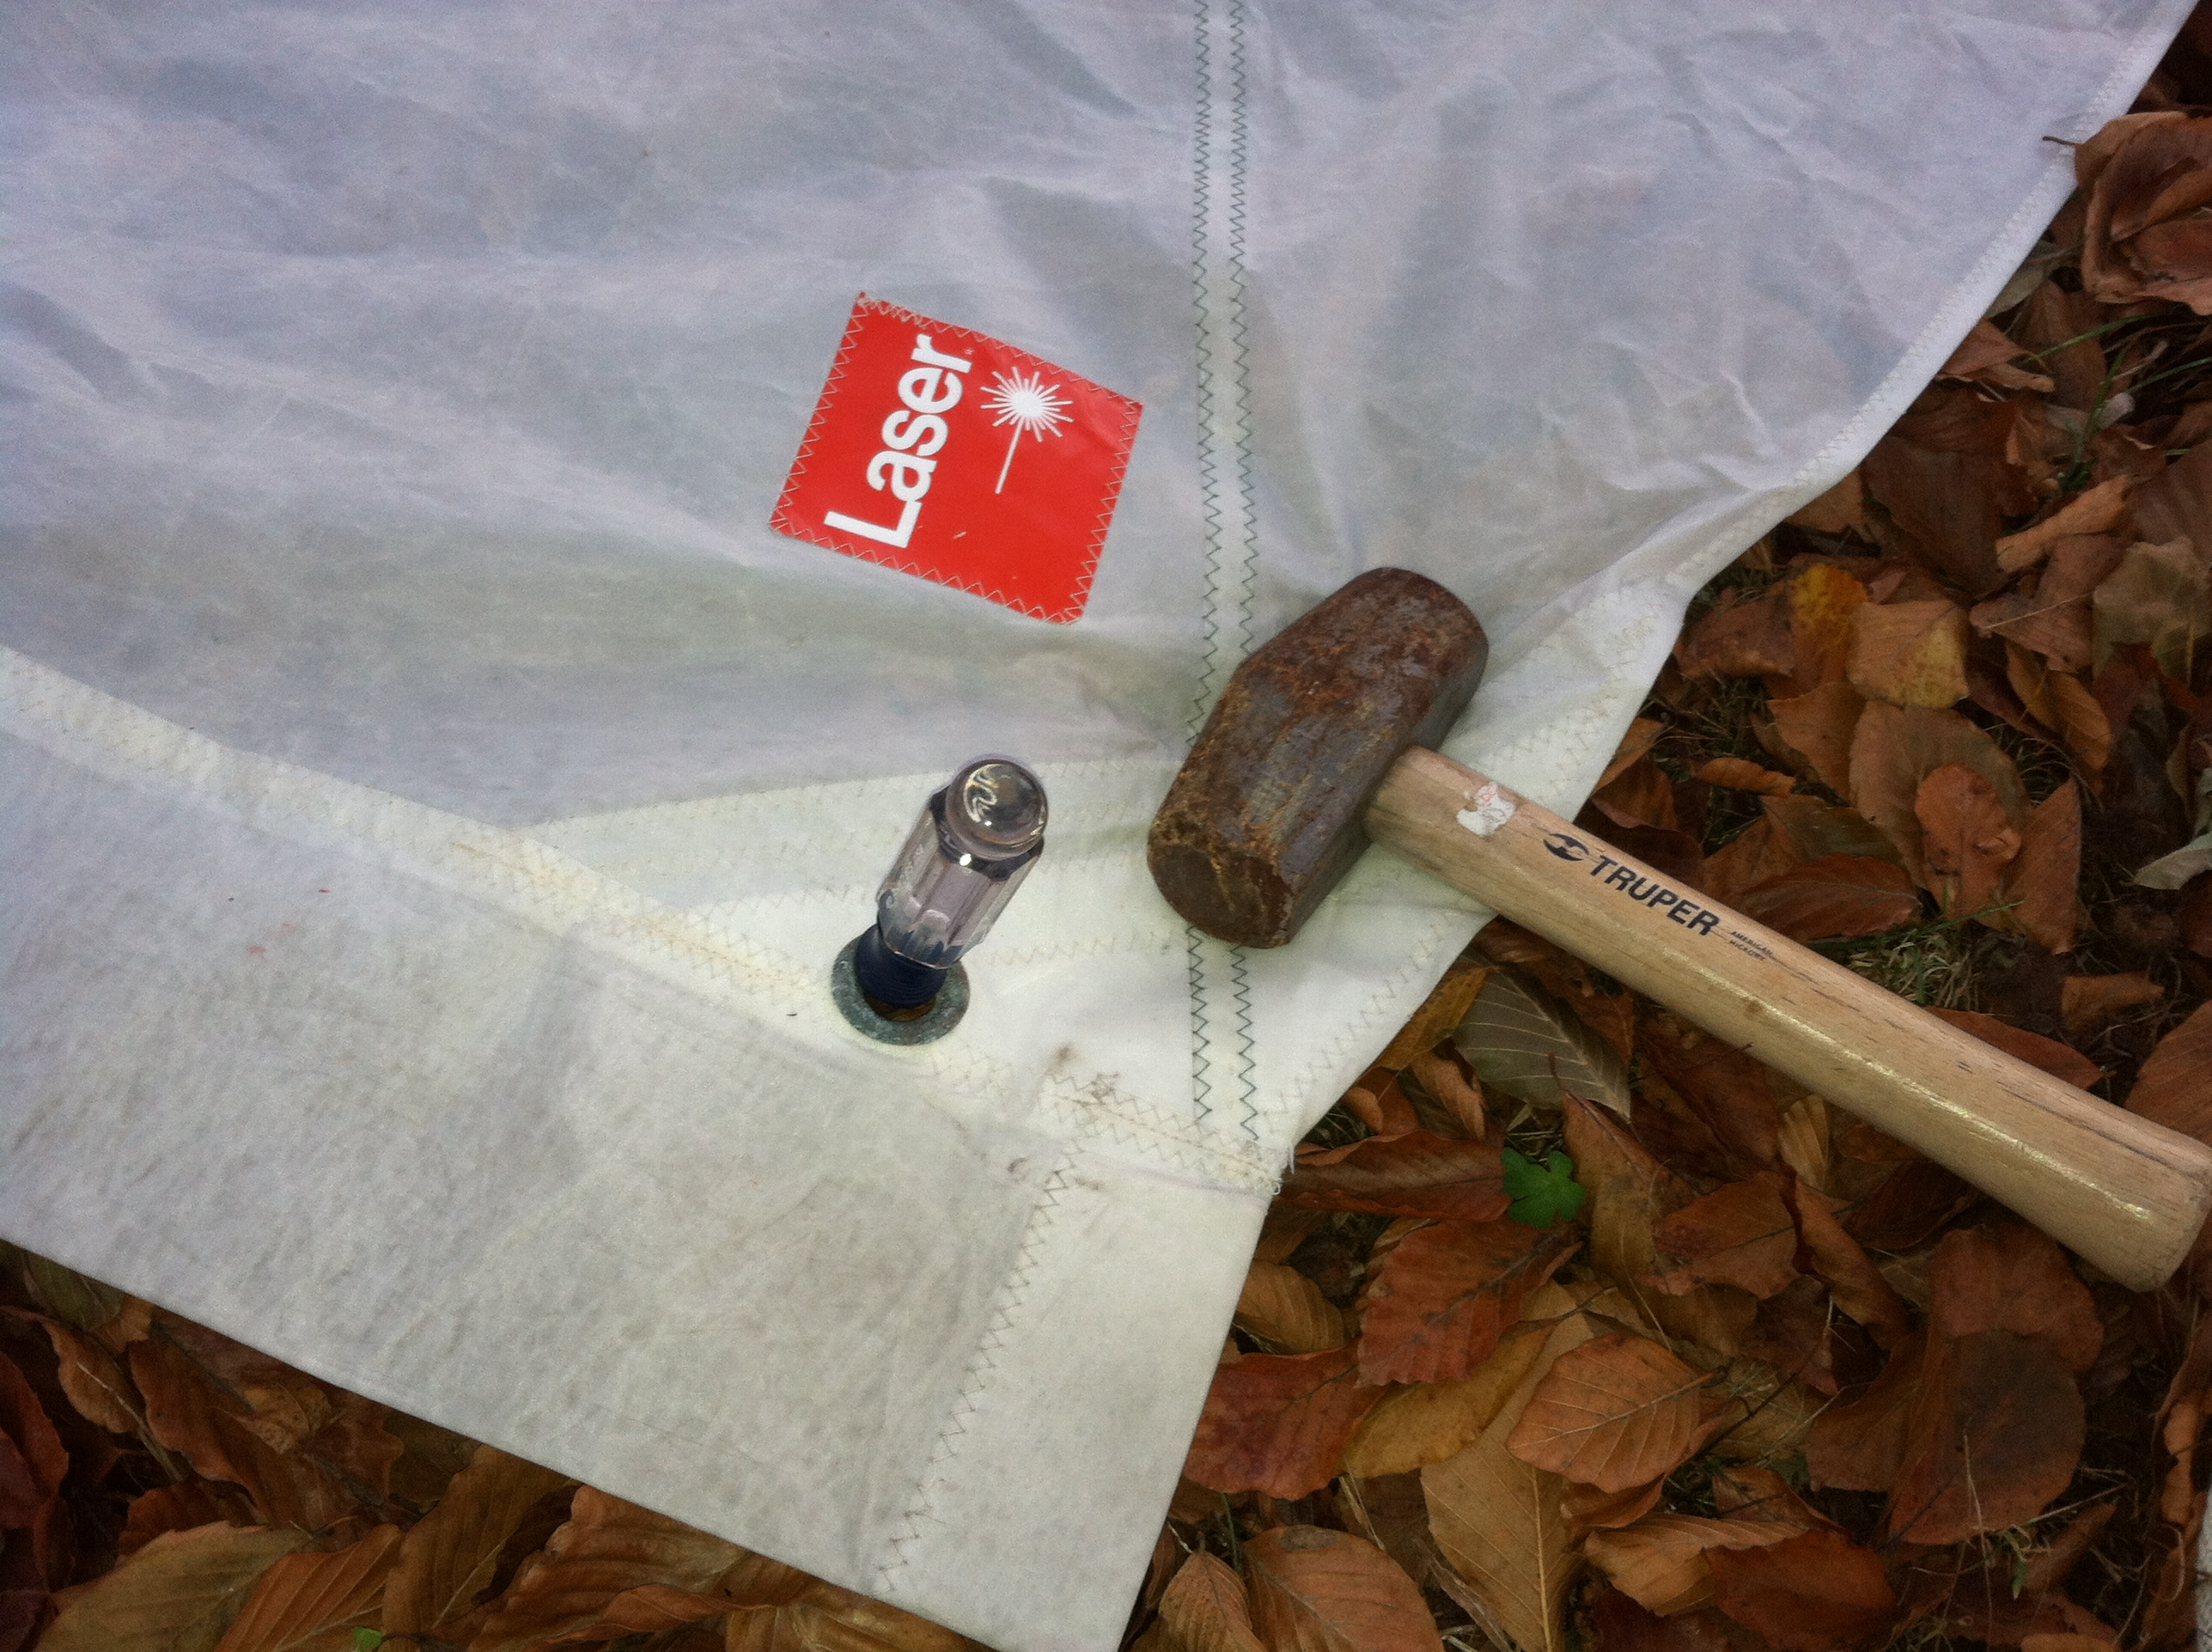 Secure the tack with, in this case, a screwdriver pressed into the soil.